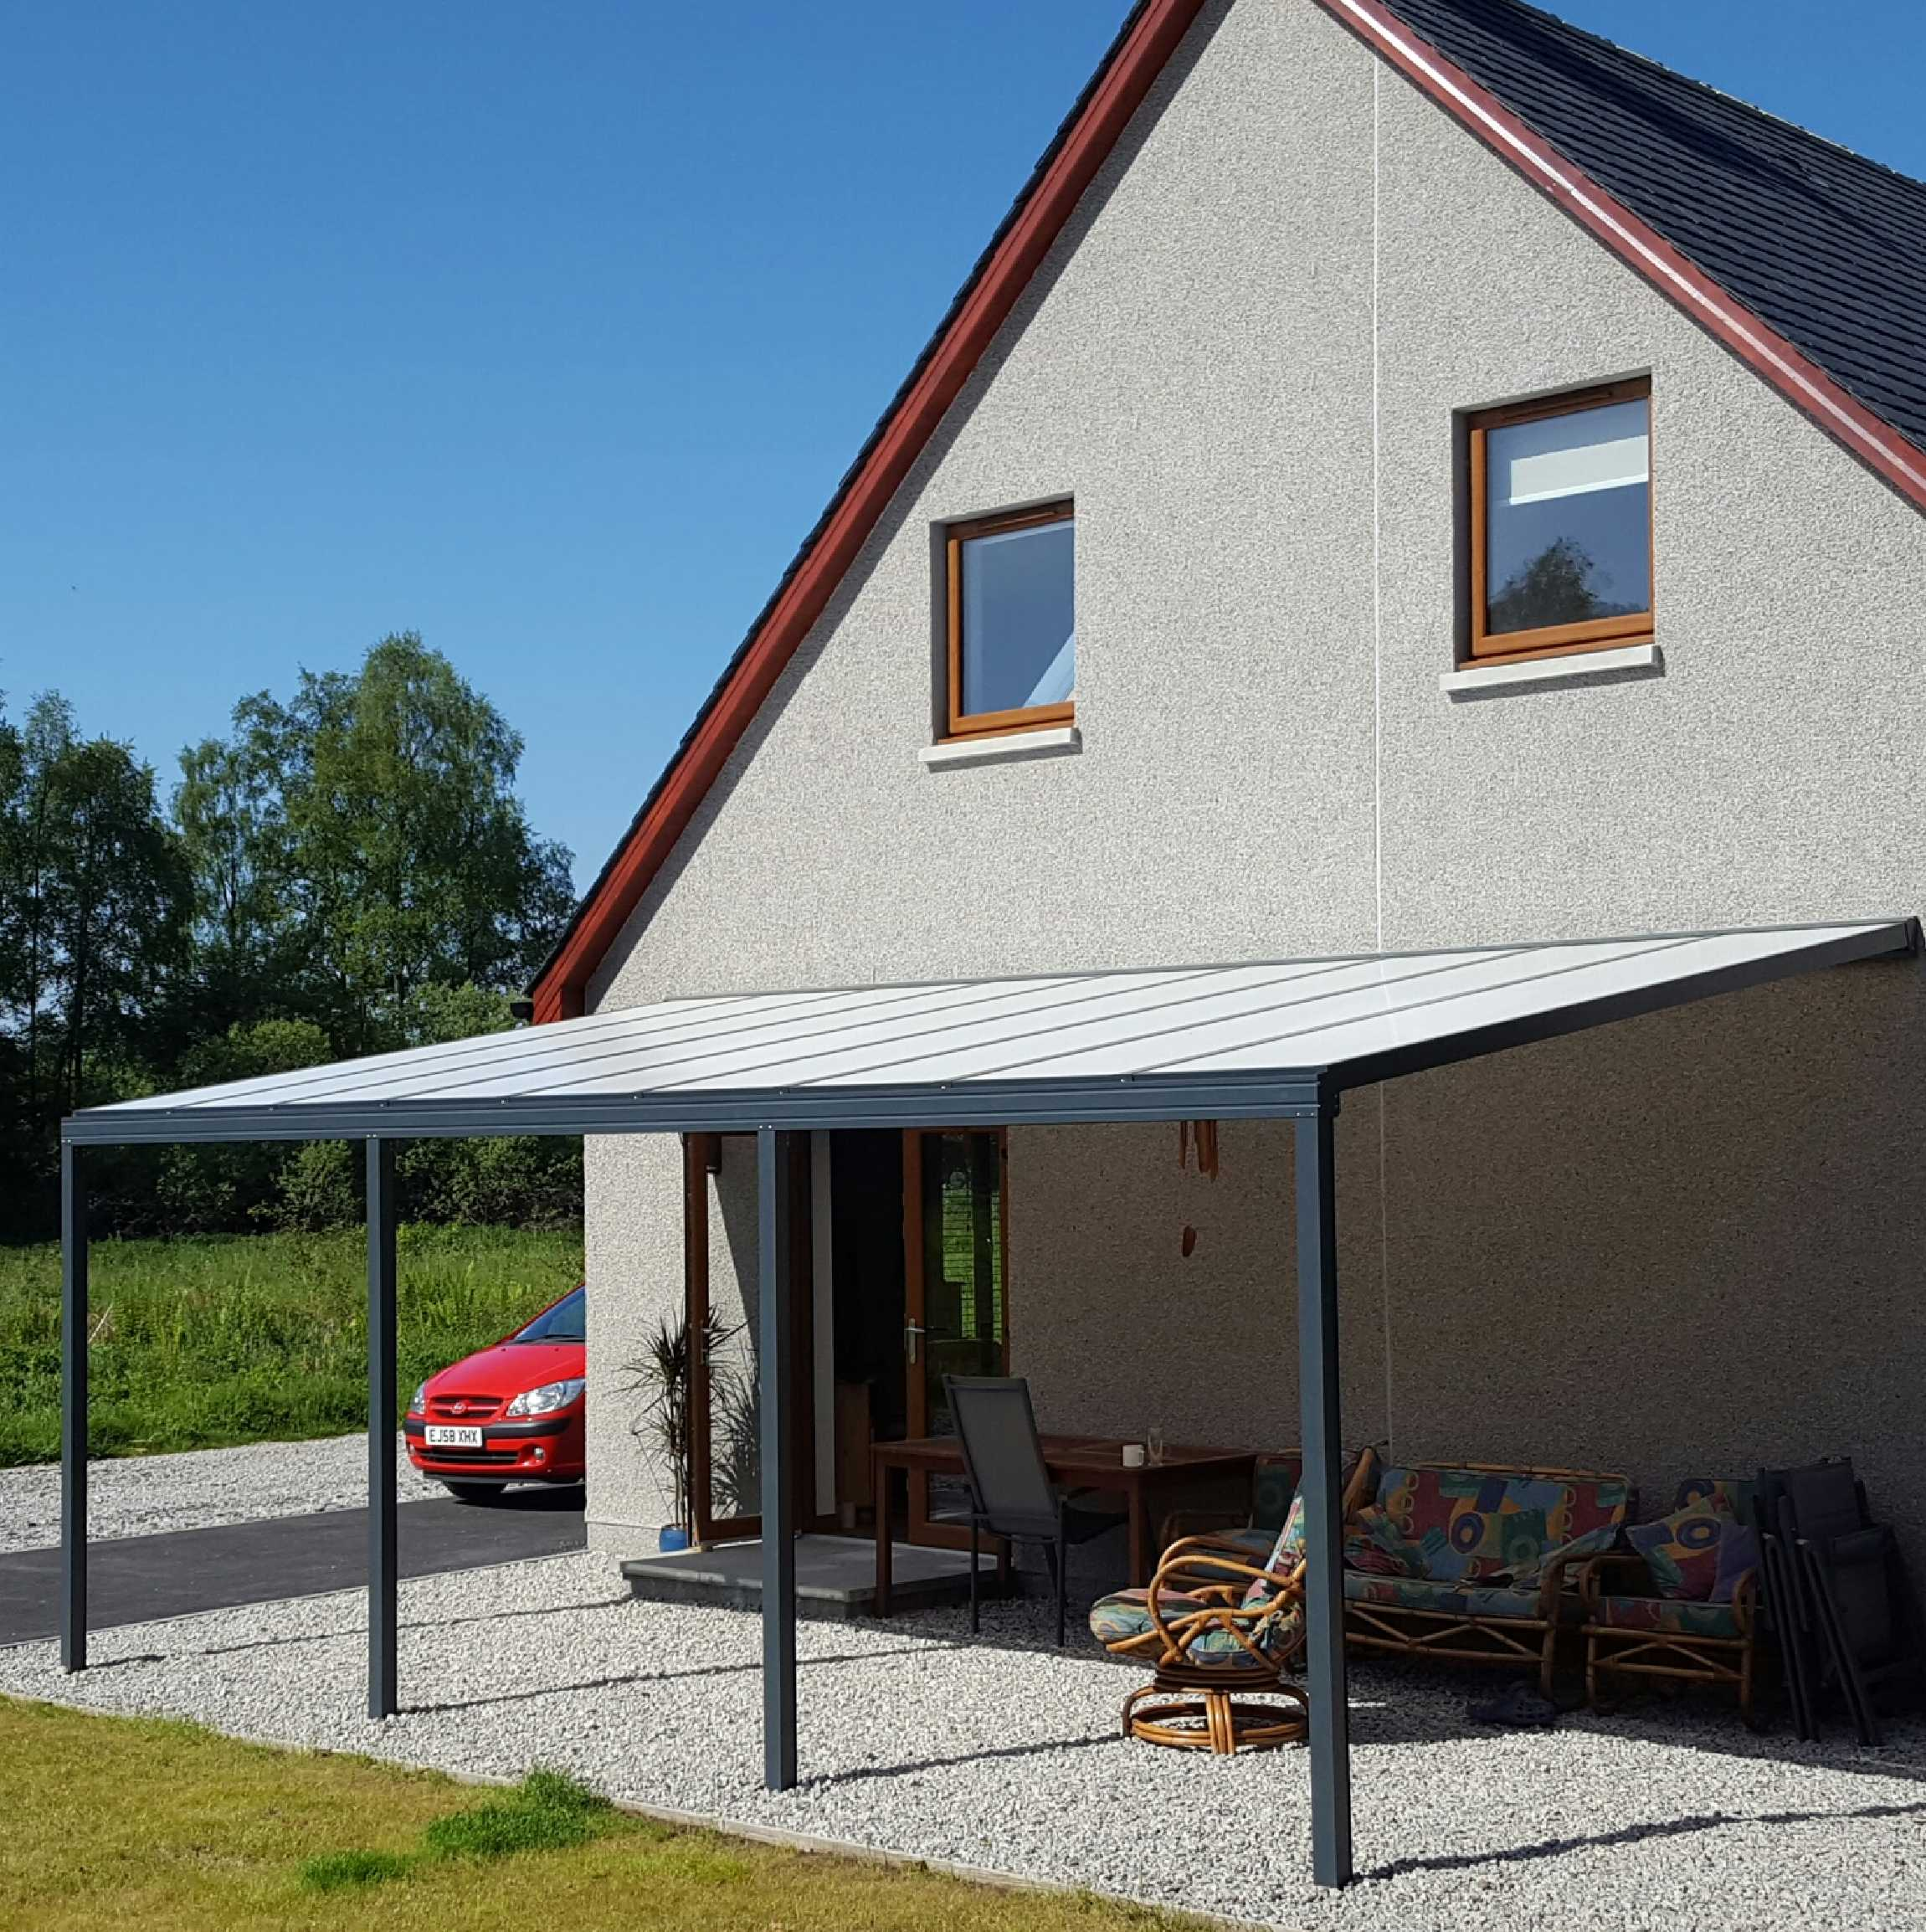 Great selection of Omega Smart Lean-To Canopy, Anthracite Grey, 16mm Polycarbonate Glazing - 3.1m (W) x 1.5m (P), (2) Supporting Posts